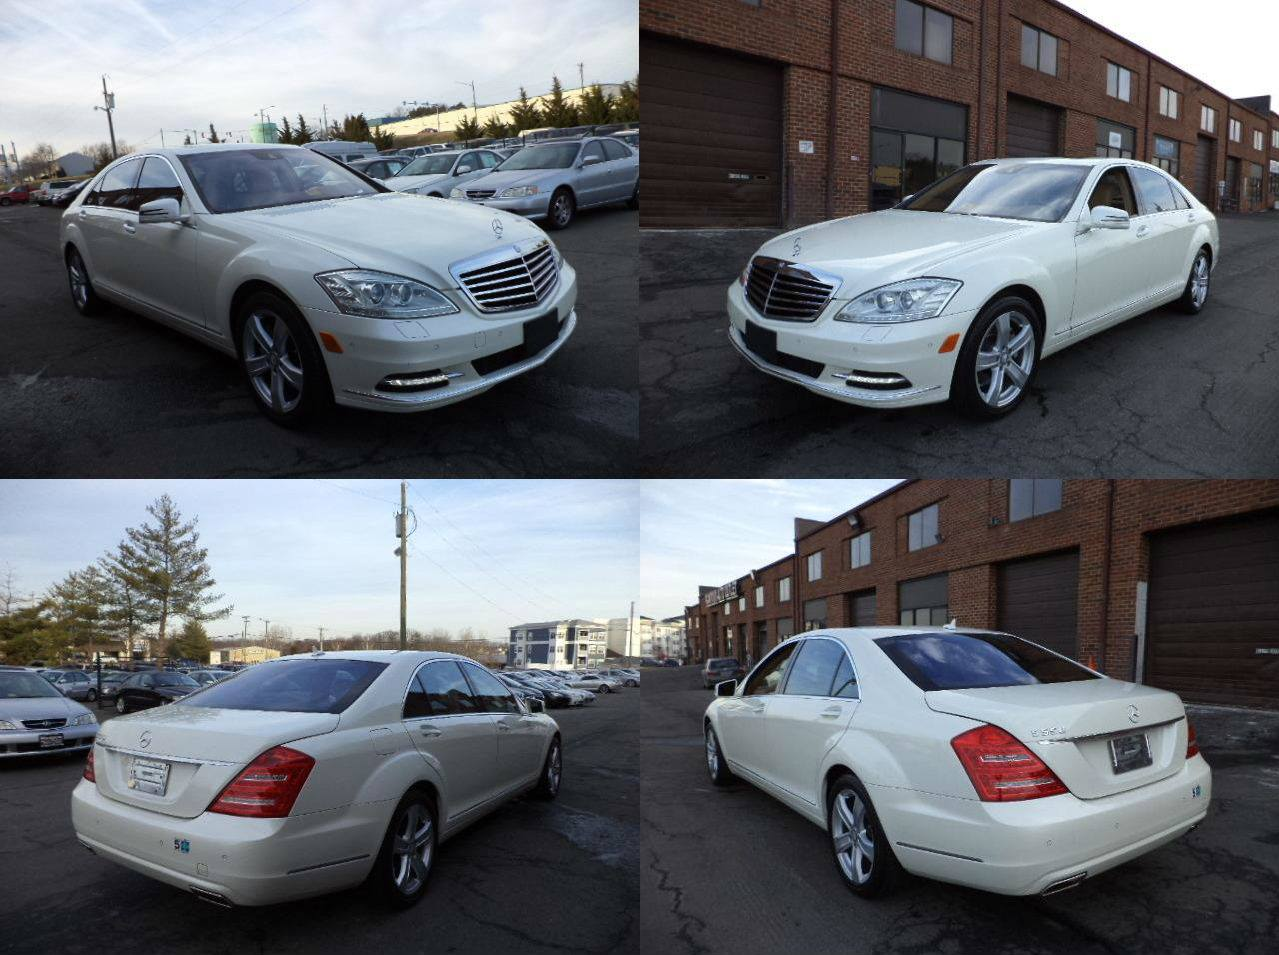 Unsold Cars For Sale By Auction Export! - Autos (27) - Nigeria